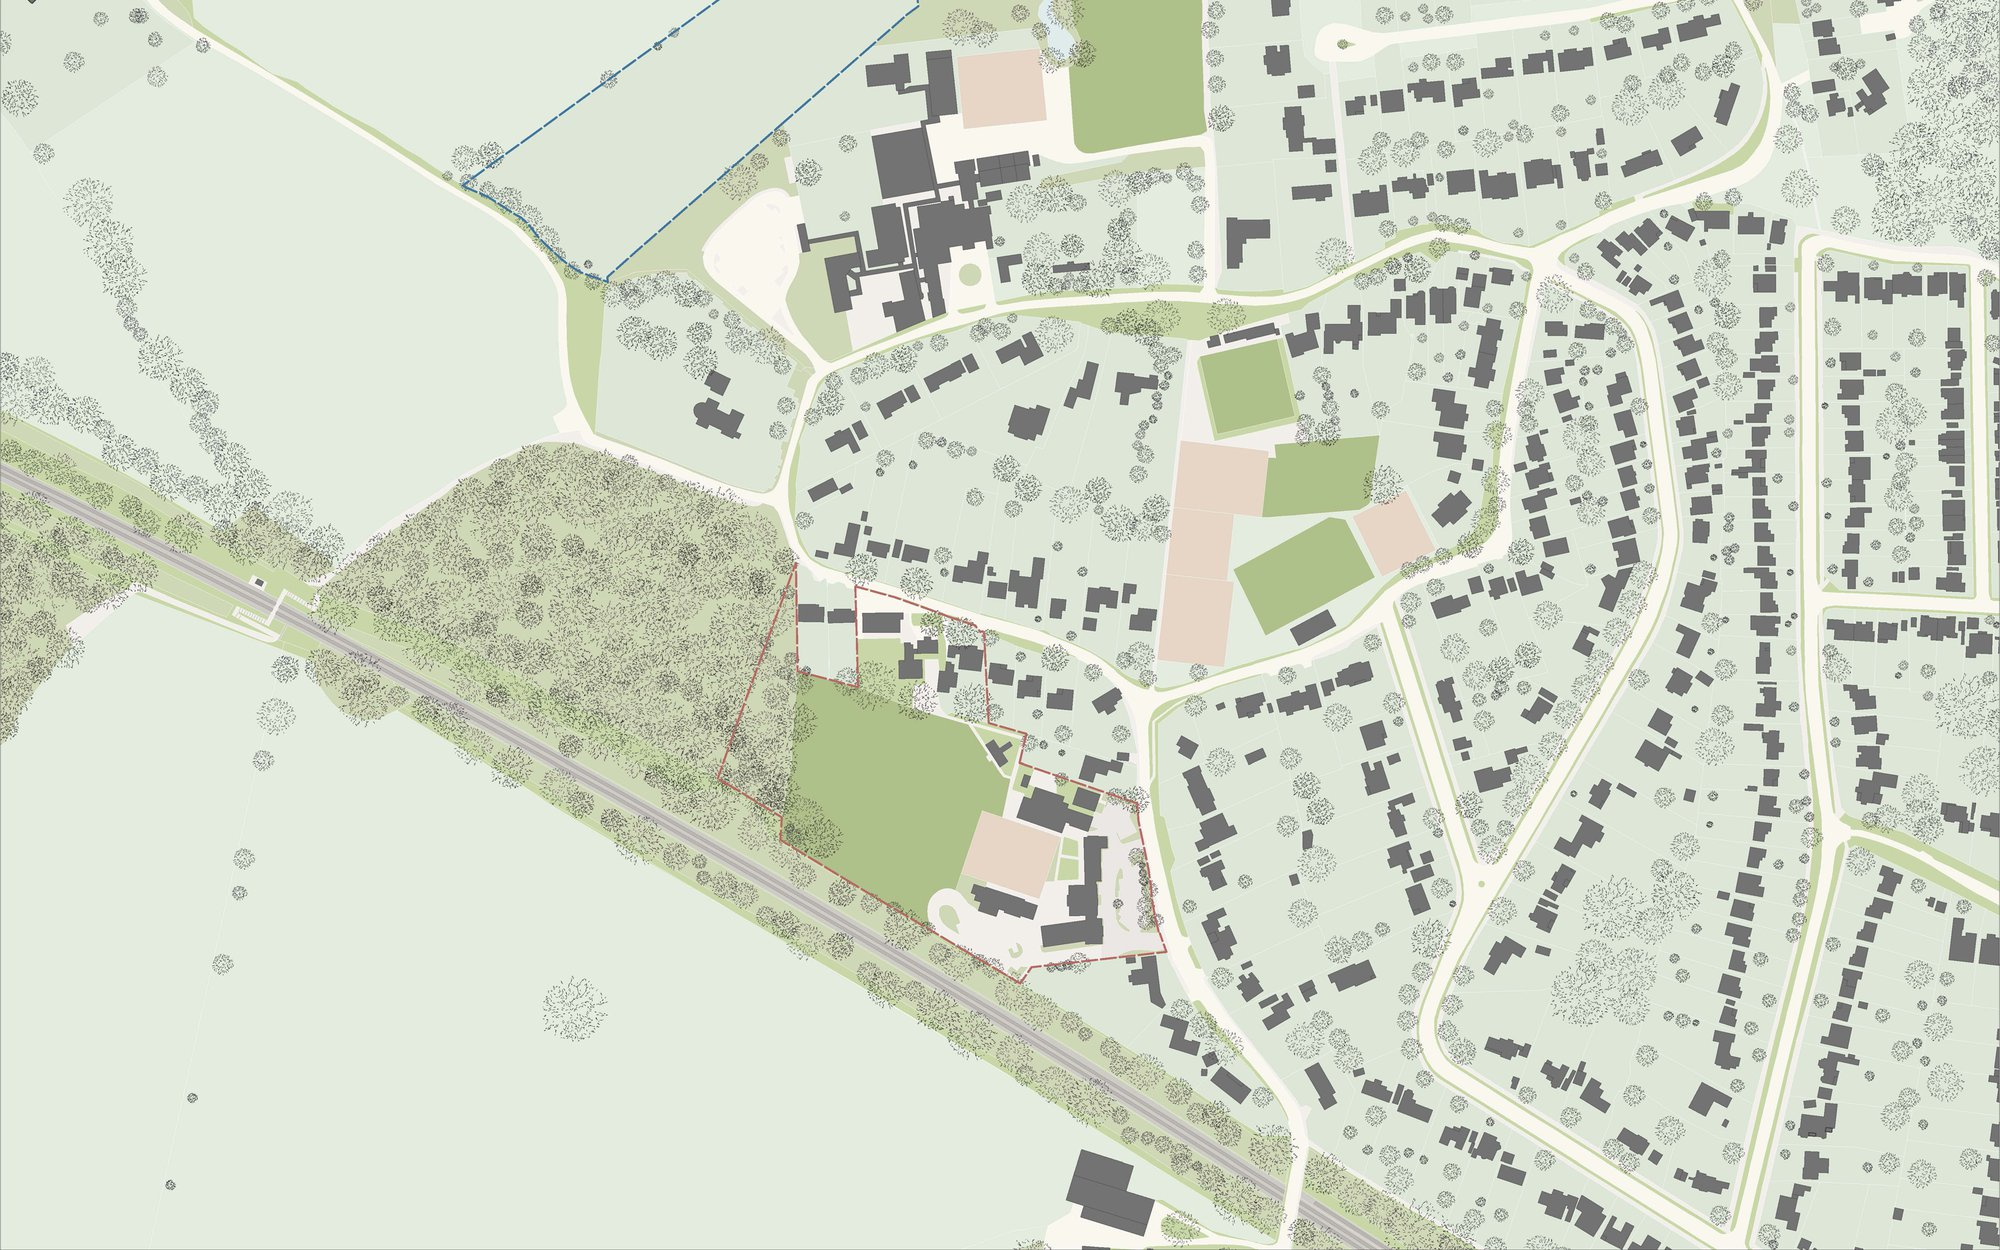 5_9_1502_Gayhurst School_site plan.jpg